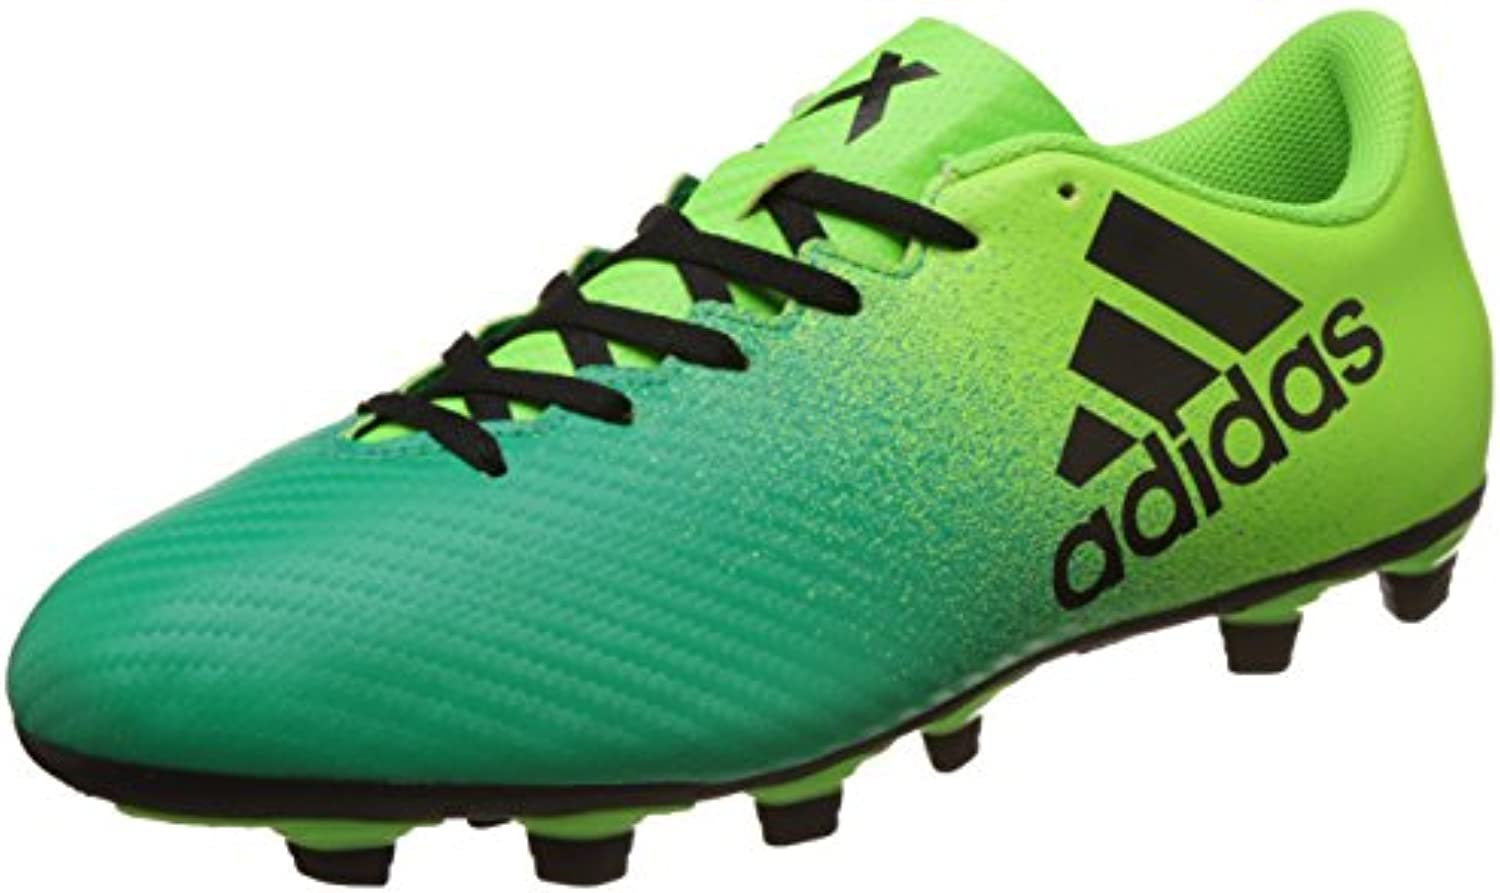 adidas x 16,4 fxg & chaussures agrave; les chaussures & de foot, Vert  & agrave; (versol / negbas / verbas) 4 5 1 / 3 620847